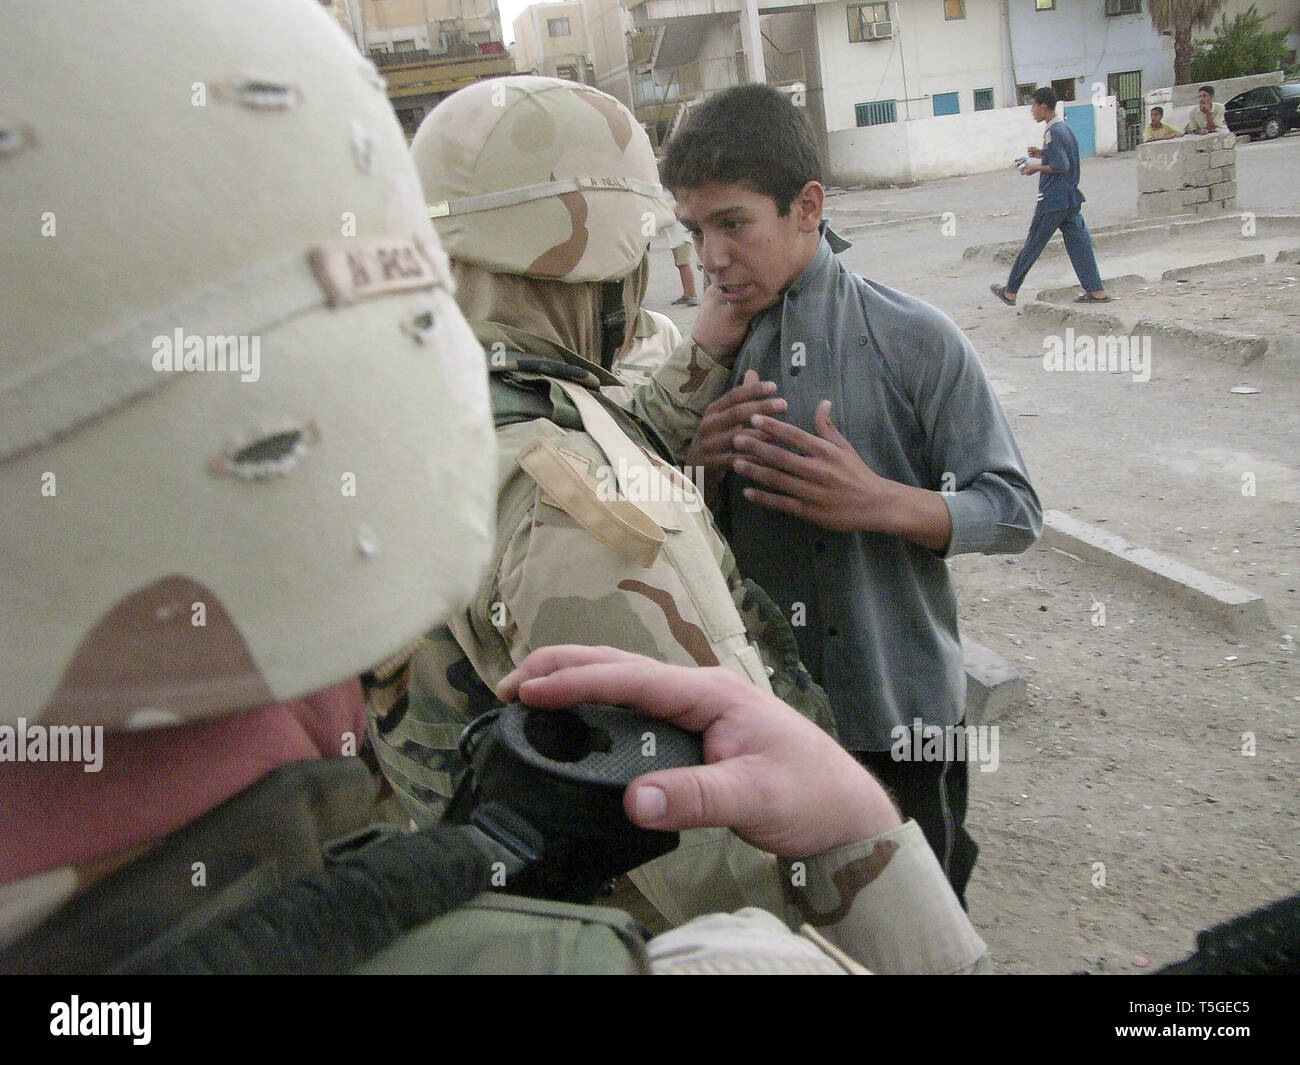 Baghdad, Baghdad, Iraq. 16th Sep, 2004. A linguist grabs an Iraqi boy by the throat during a patrol by Charlie Company, 1st Battalion, 8th Cavalry Regiment in Baghdad Sept. 16, 2004. Credit: Bill Putnam/ZUMA Wire/Alamy Live News Stock Photo